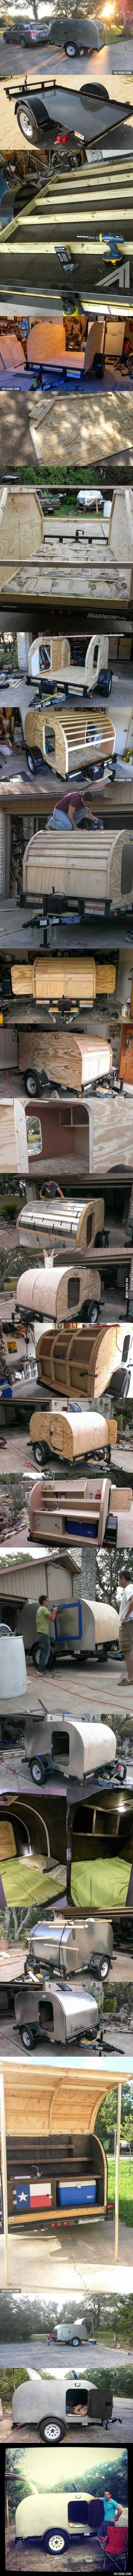 I decided build a tiny camping trailer. I had no experience but I gave it my best shot.